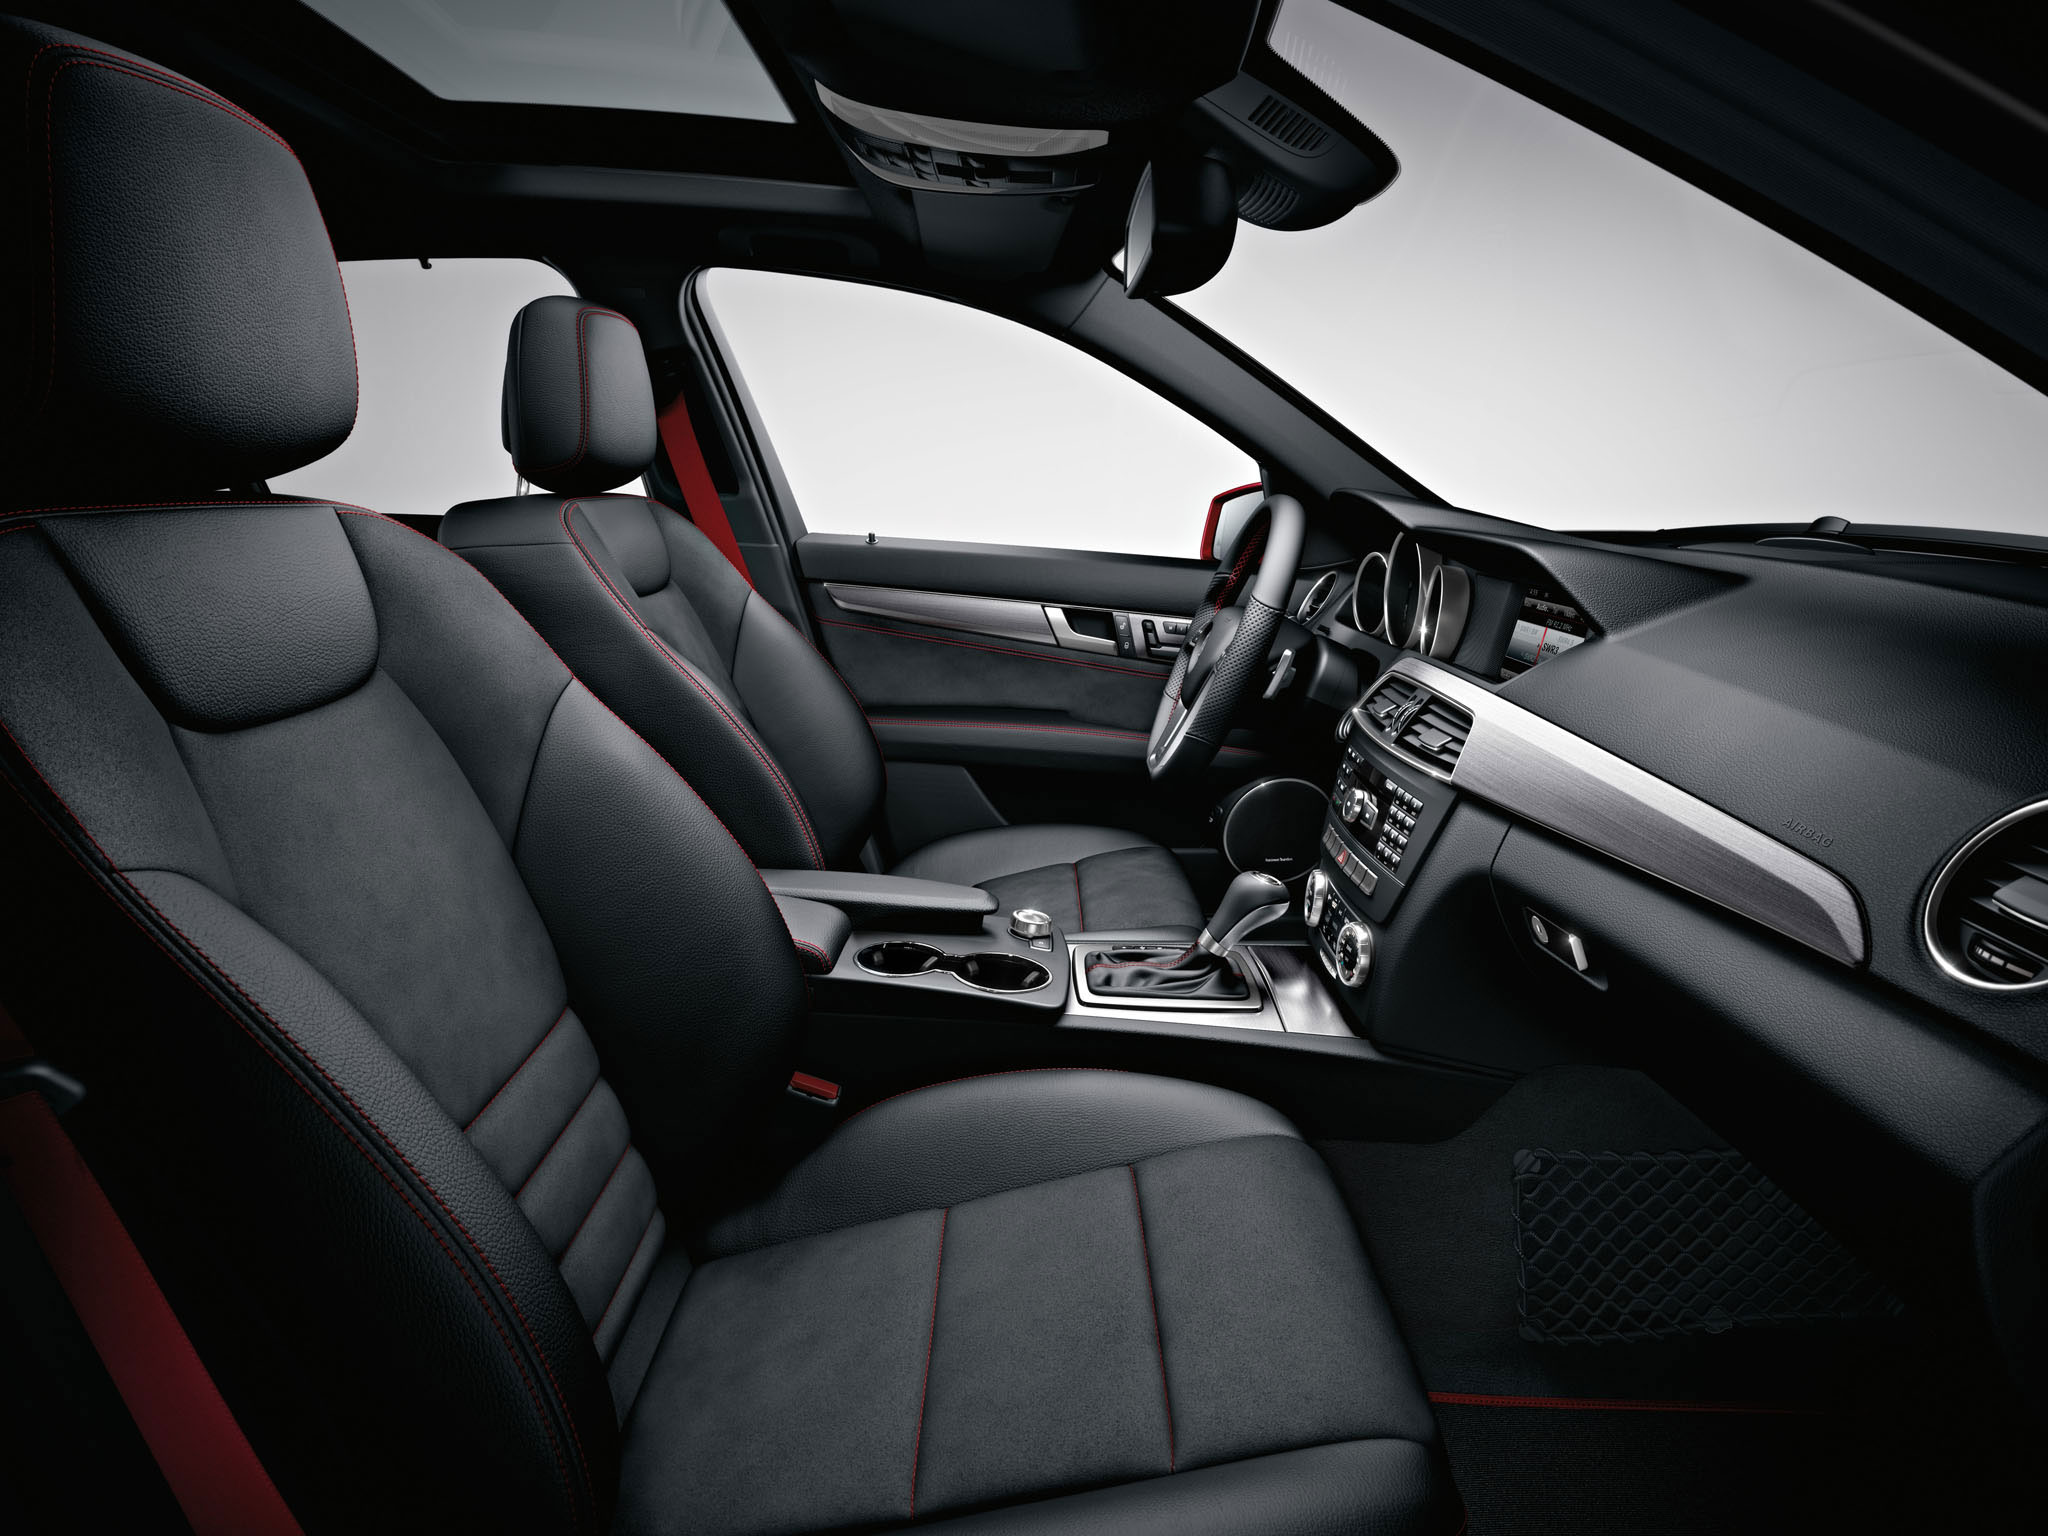 1000 images about c class on pinterest sports sedan sedans and coupe - Mercedes benz c class coupe interior ...